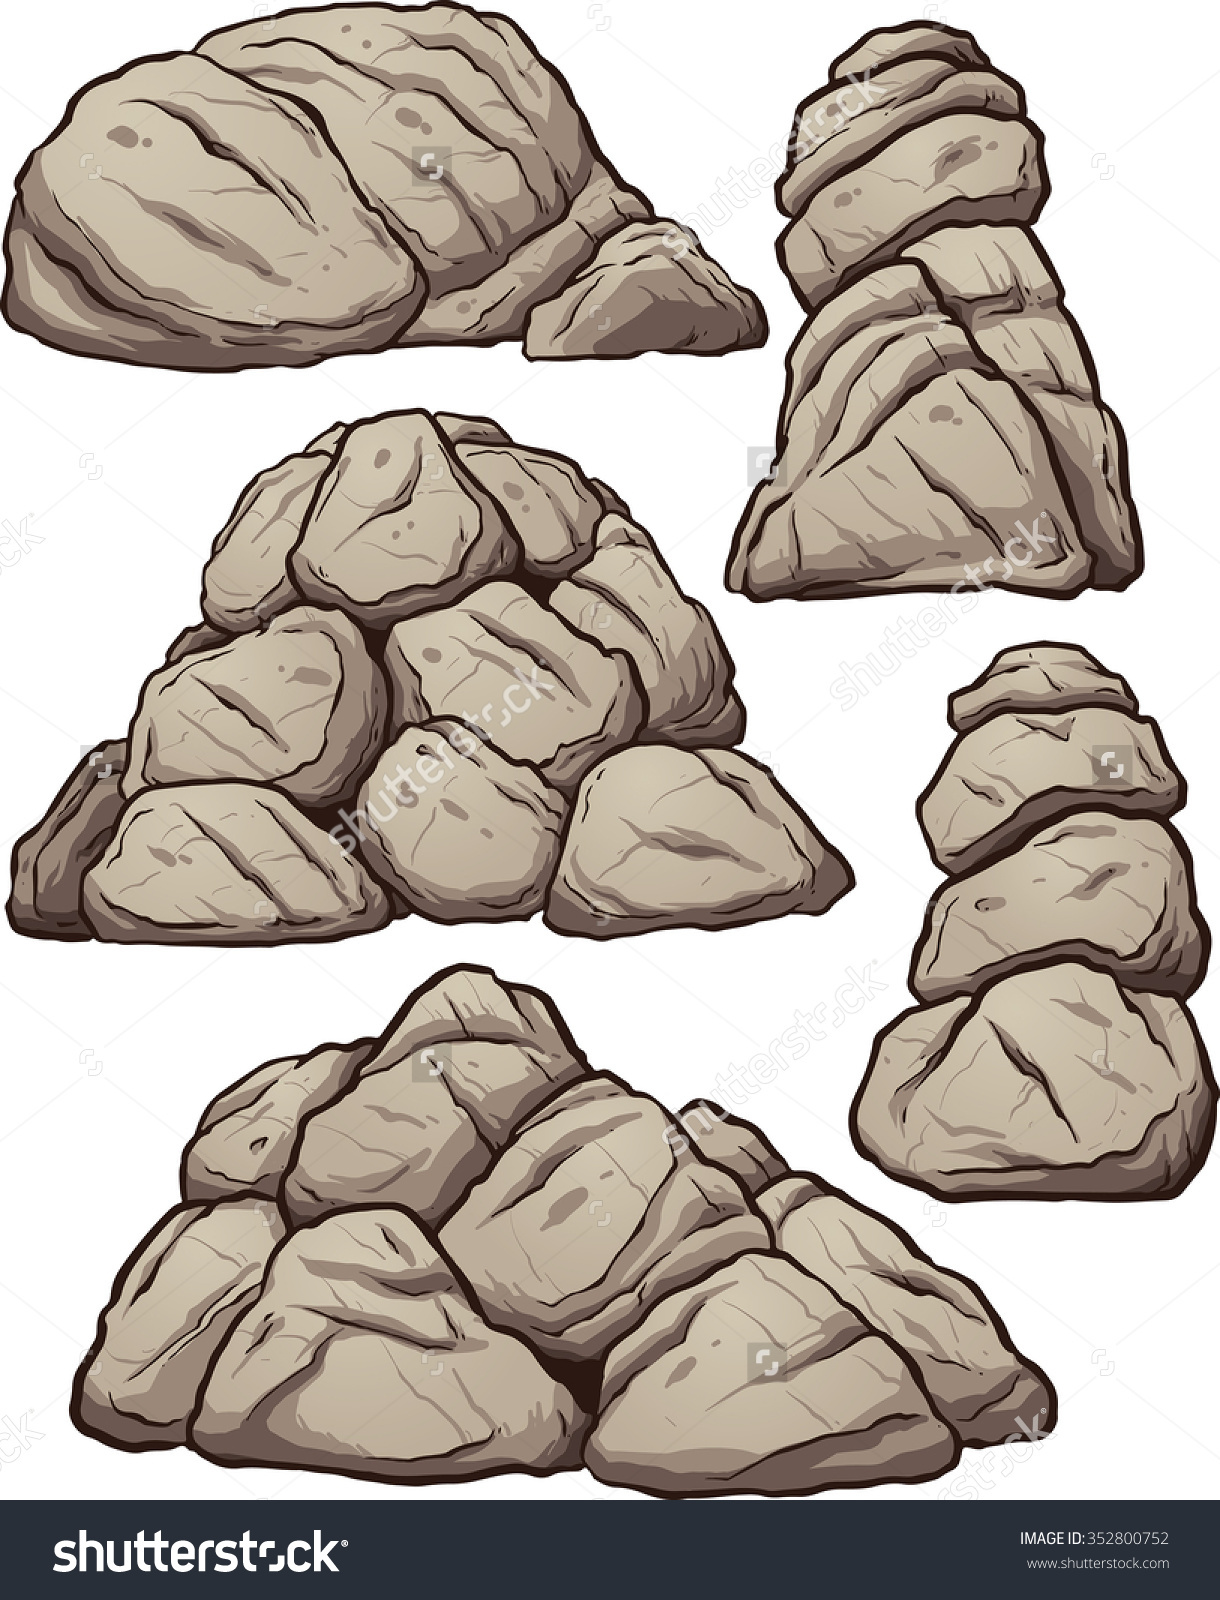 Piles of rocks. Vector clip art illustration with simple gradients. Each pile on a